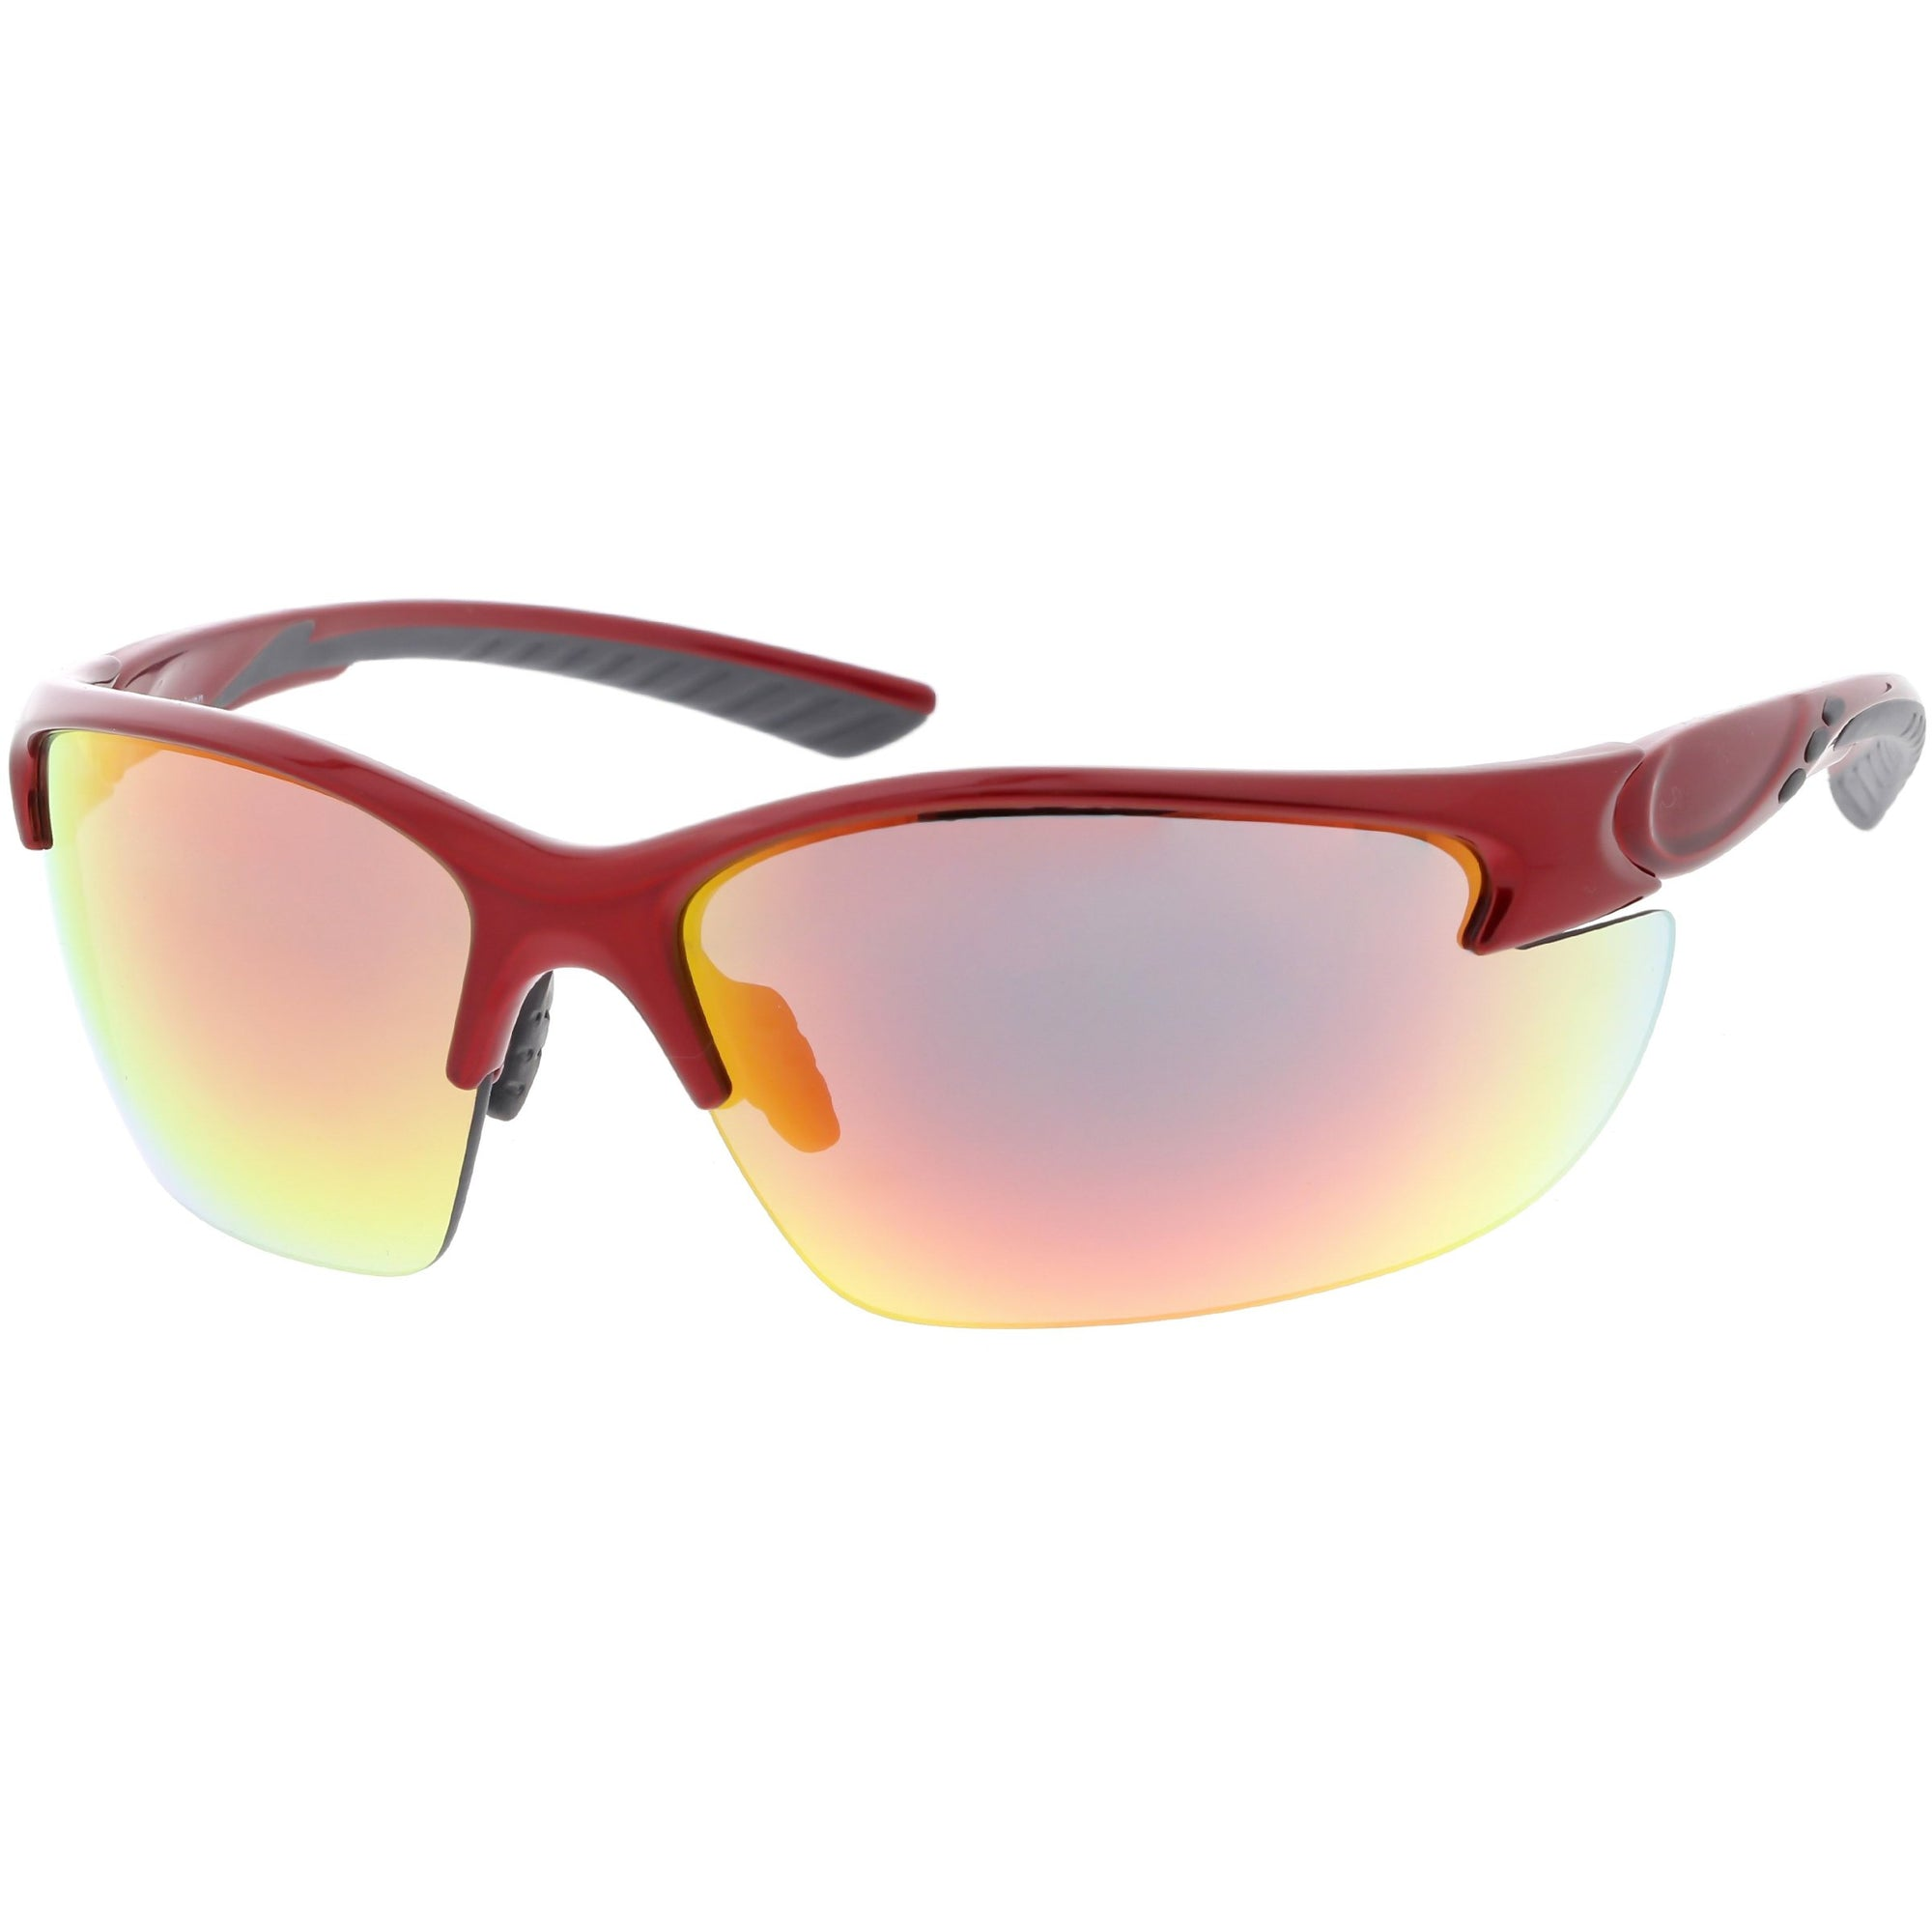 0448b490a07 ... Performance Competition Half Frame Wrap Around Sports Sunglasses C800 ·  Red Red Mirror · Red Red Mirror